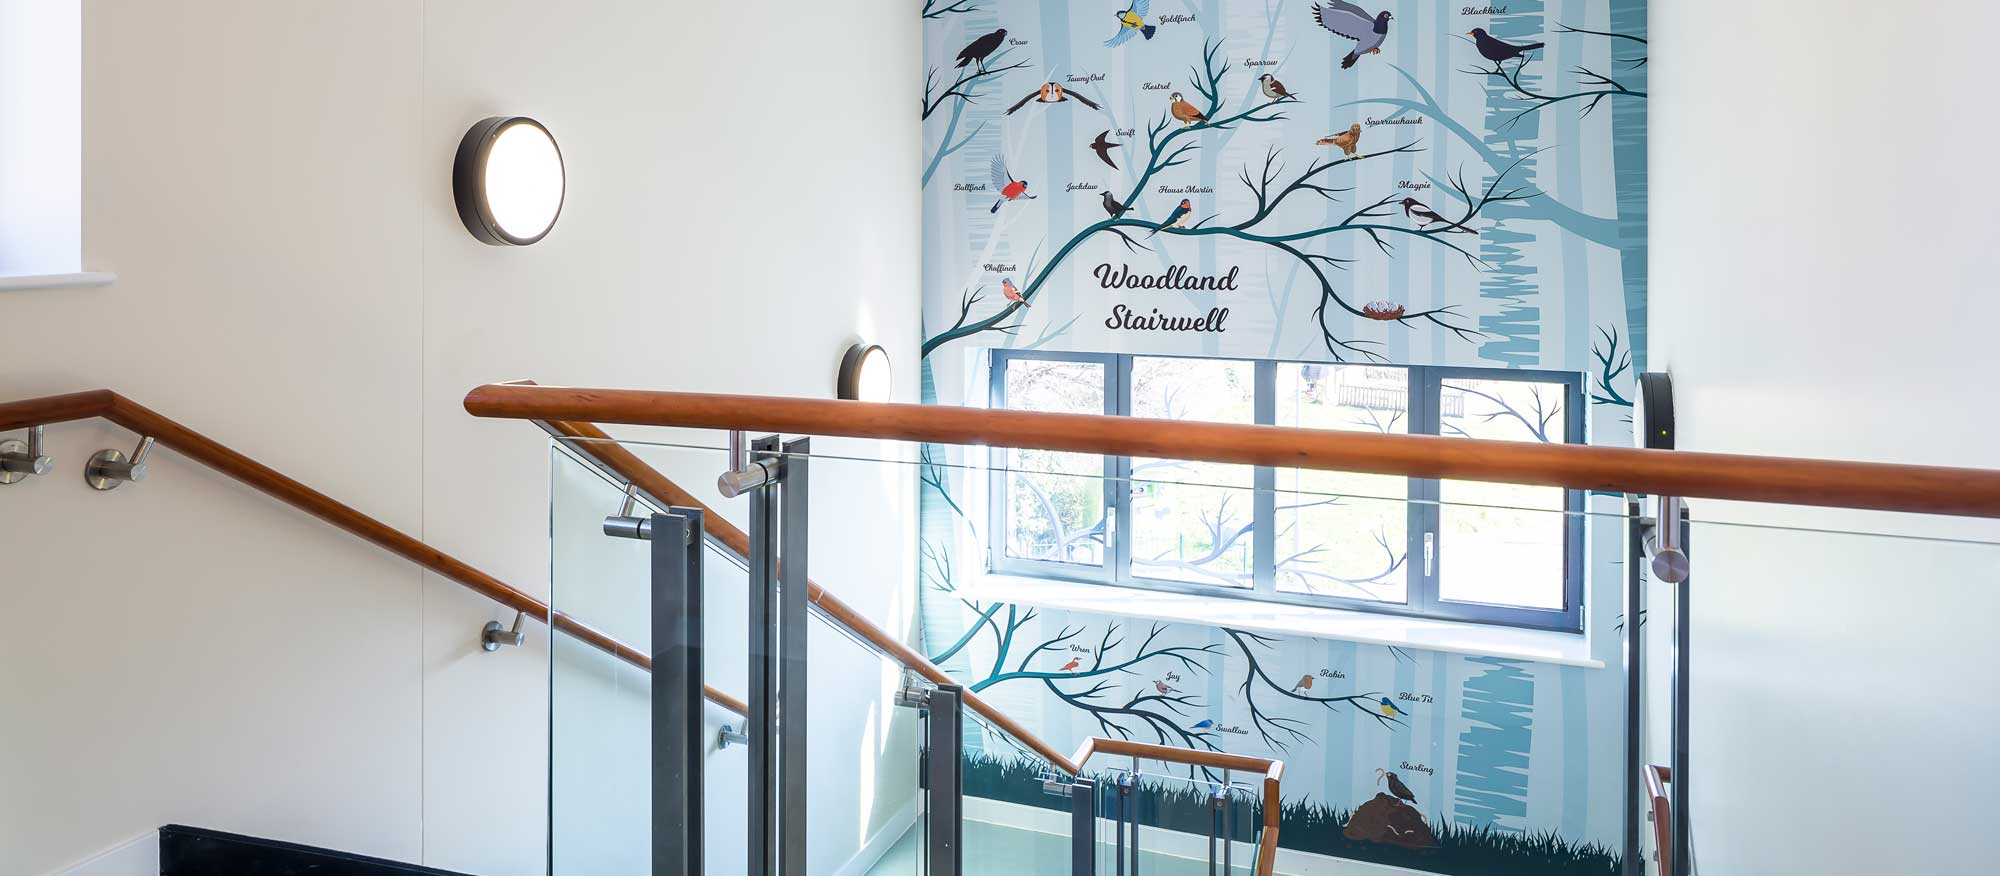 Woodland Stairwell with artwork with birds of different species